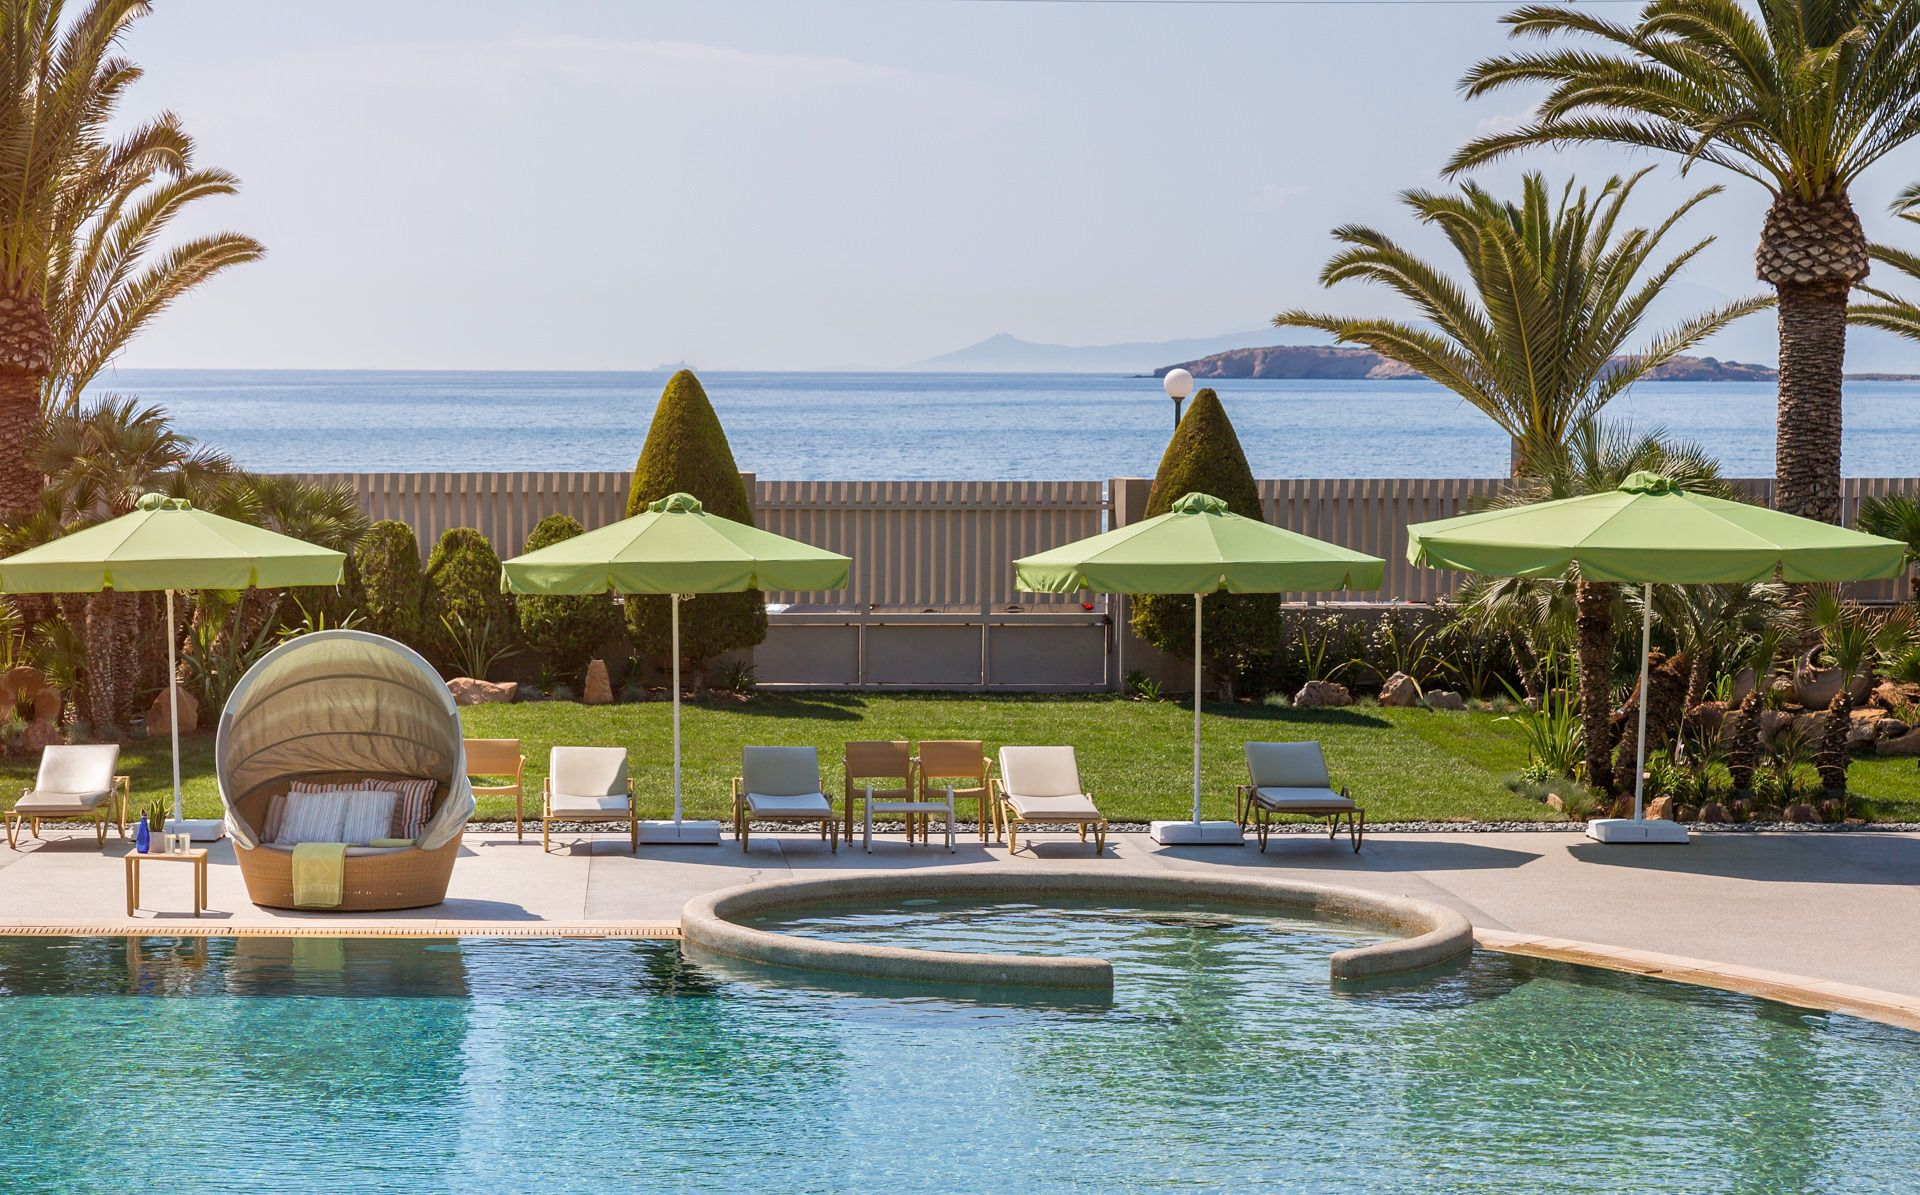 Divani Apollon Palace & Thalasso | Athens Riviera - Offers - Ultimate Staycation